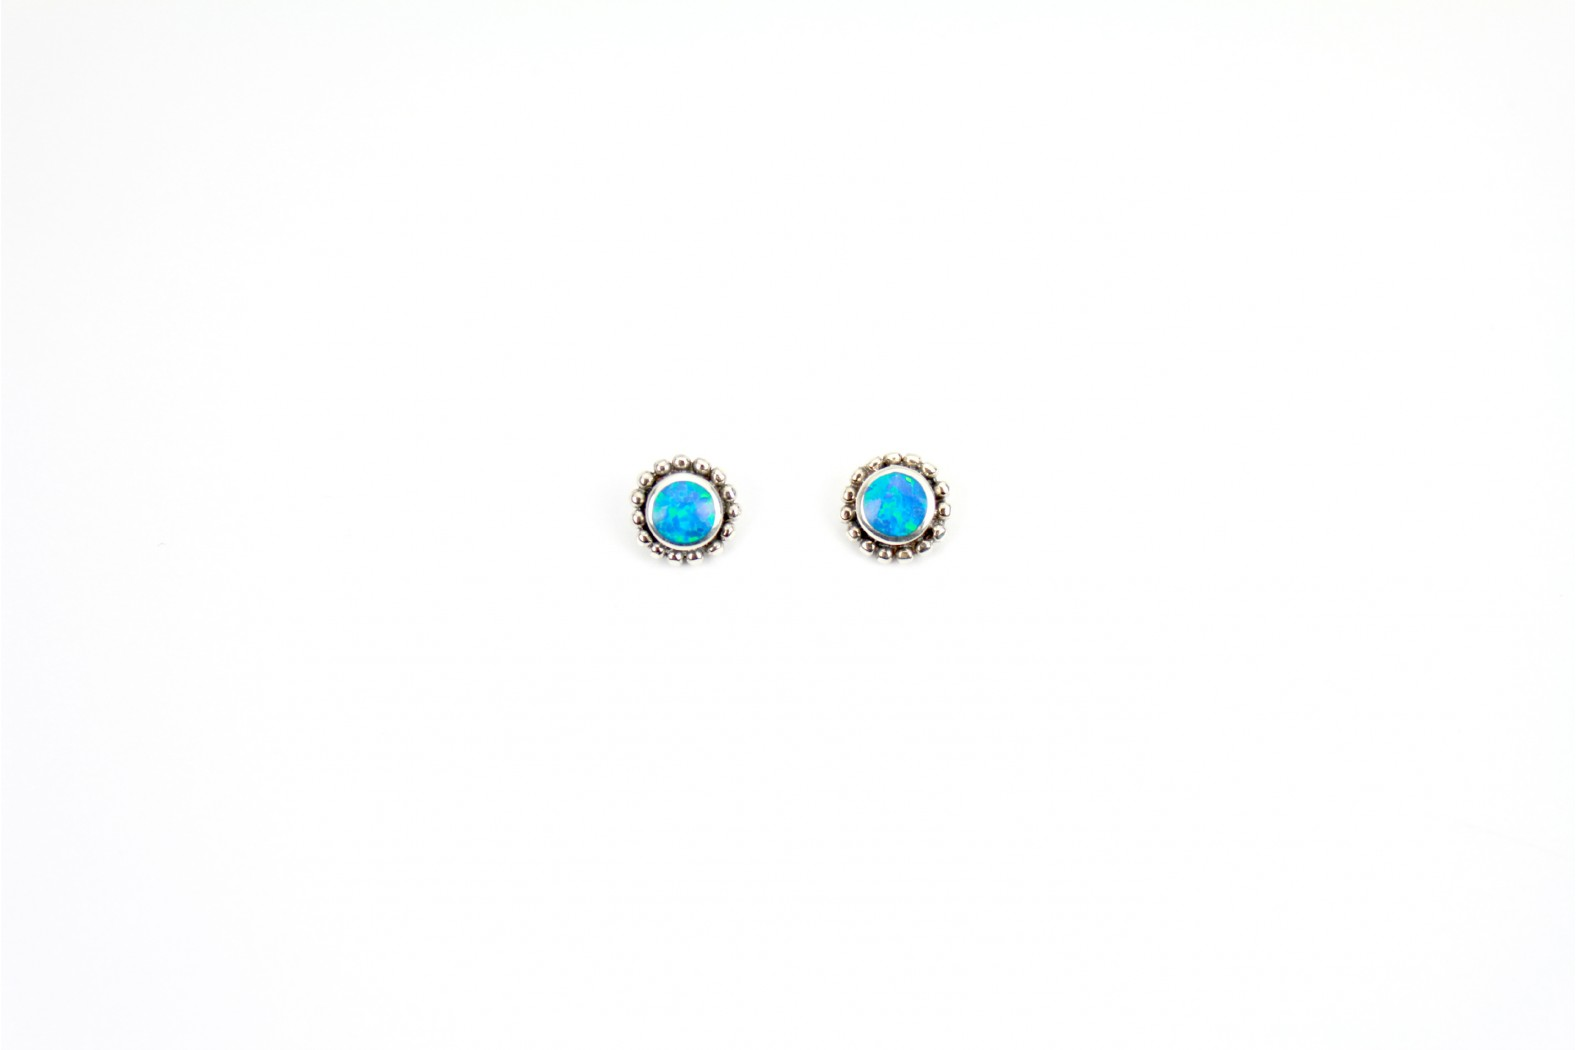 Circular Blue Opal Fire created stud earrings with antique setting